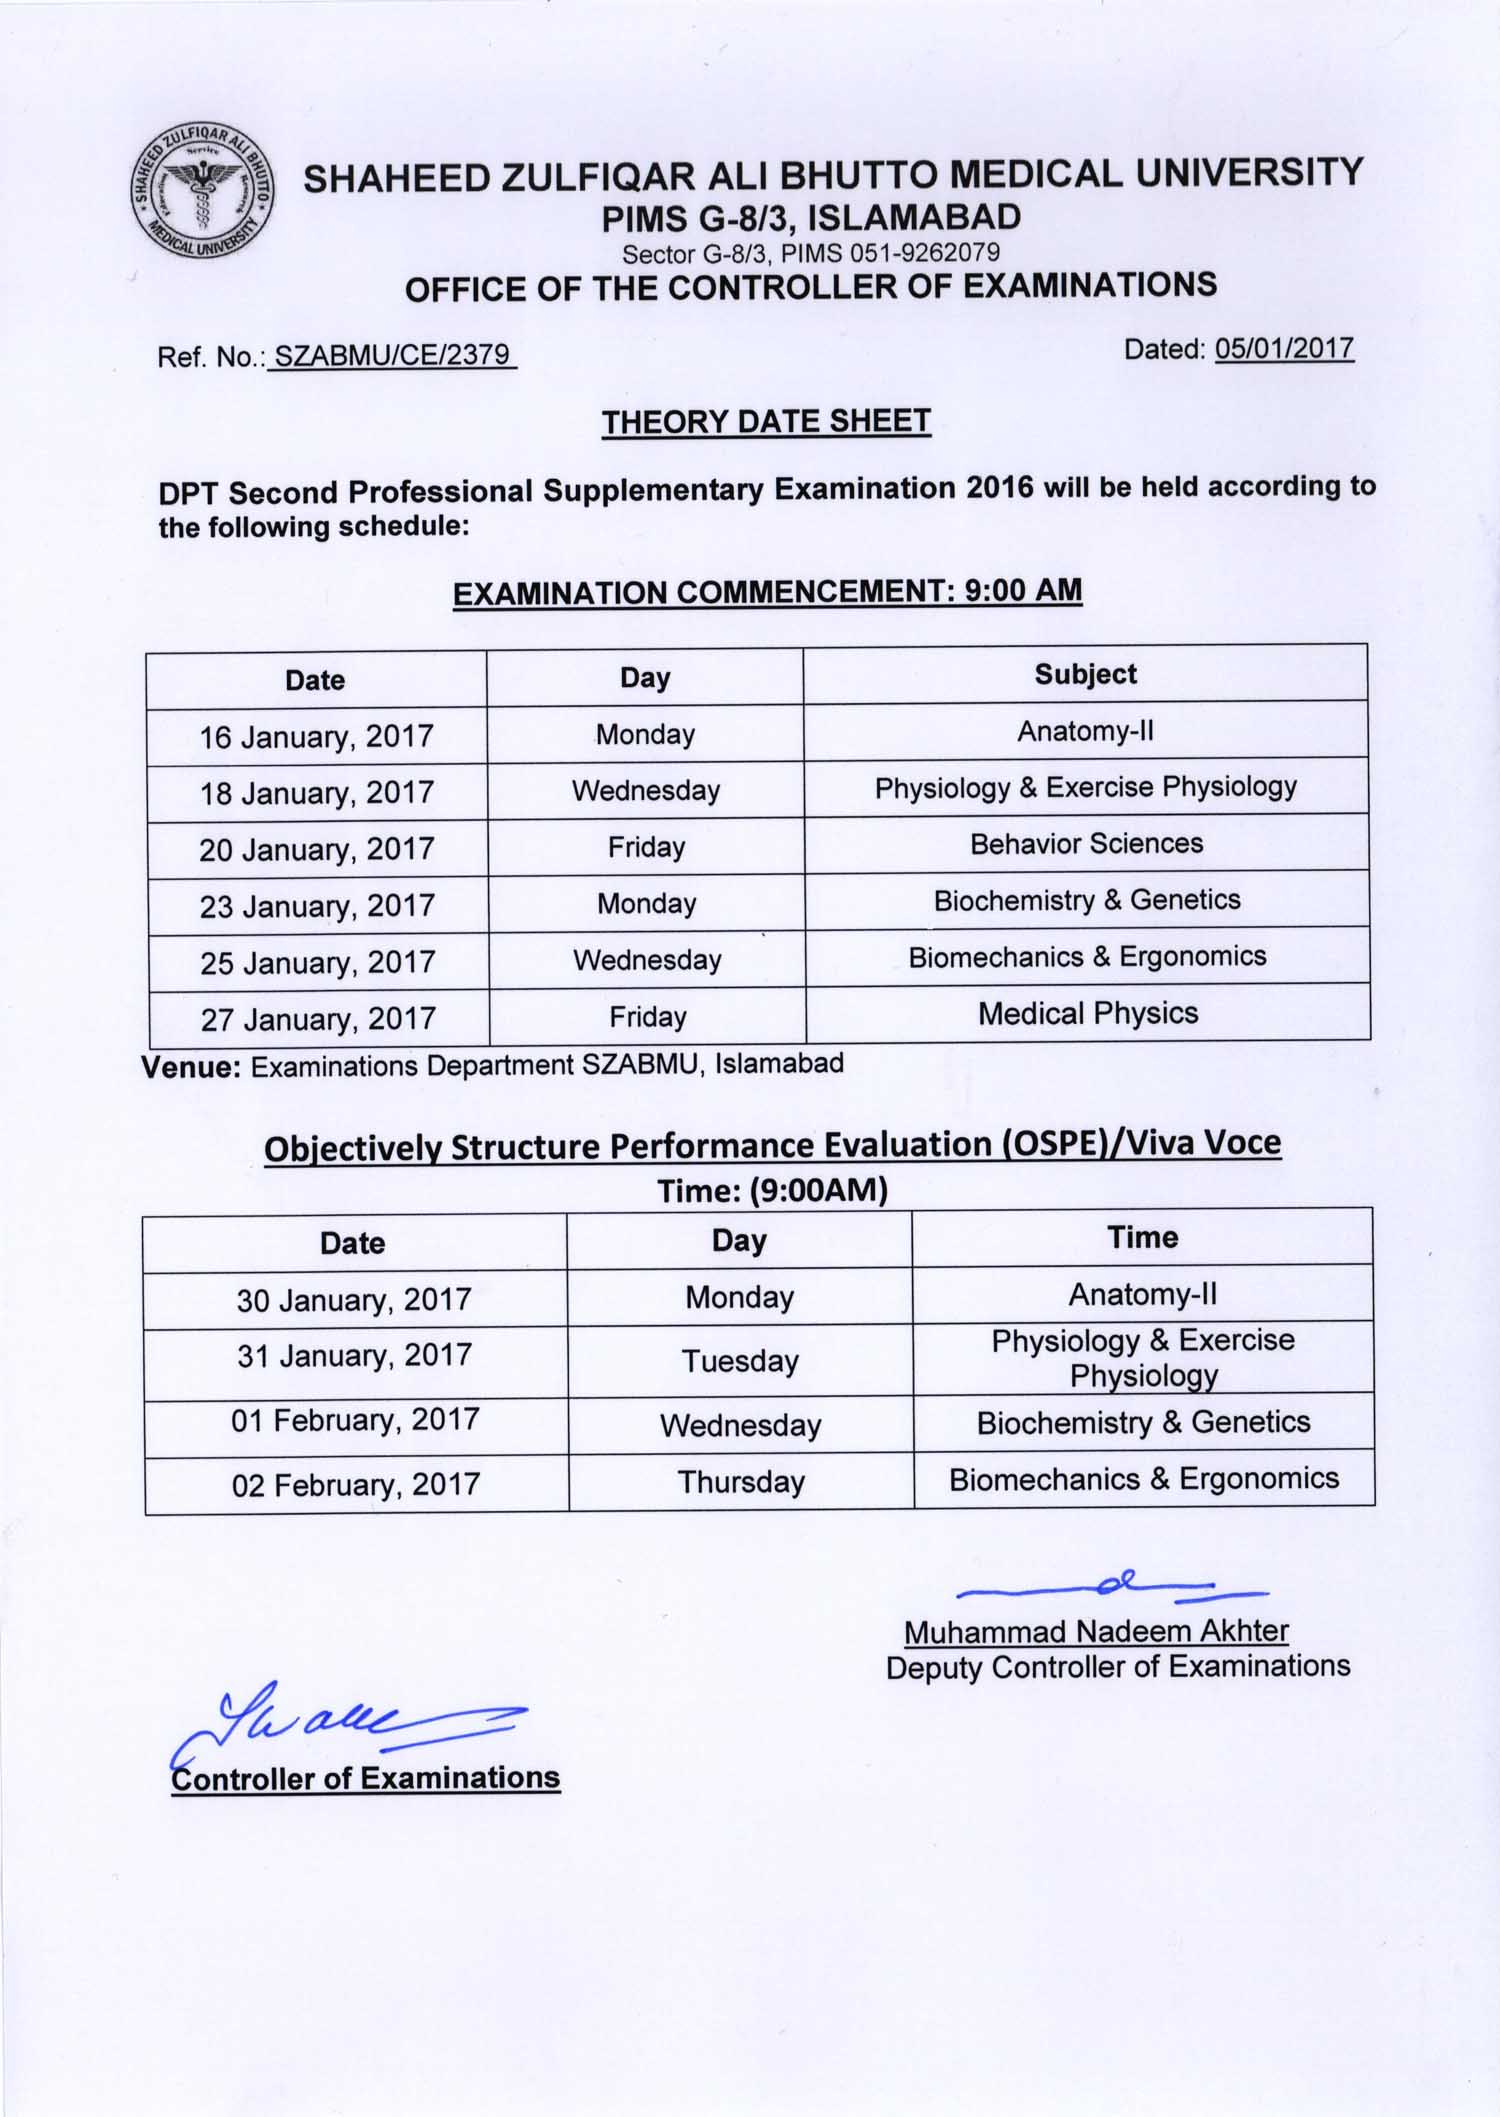 DPT 1st & 2nd Professional Supplementary Exams 2016